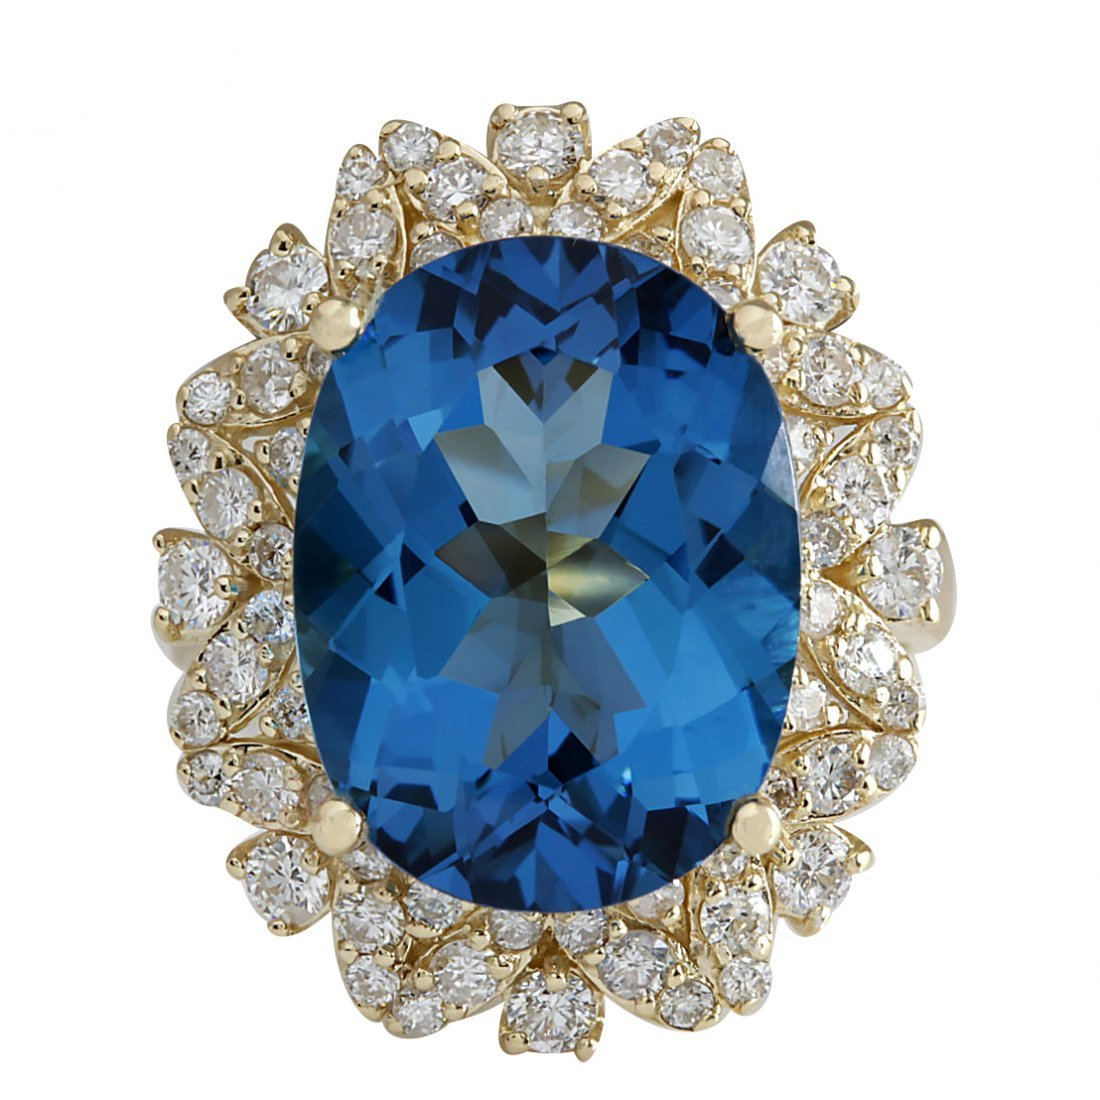 12.07Ct Natural London Blue Topaz And Diamond Ring